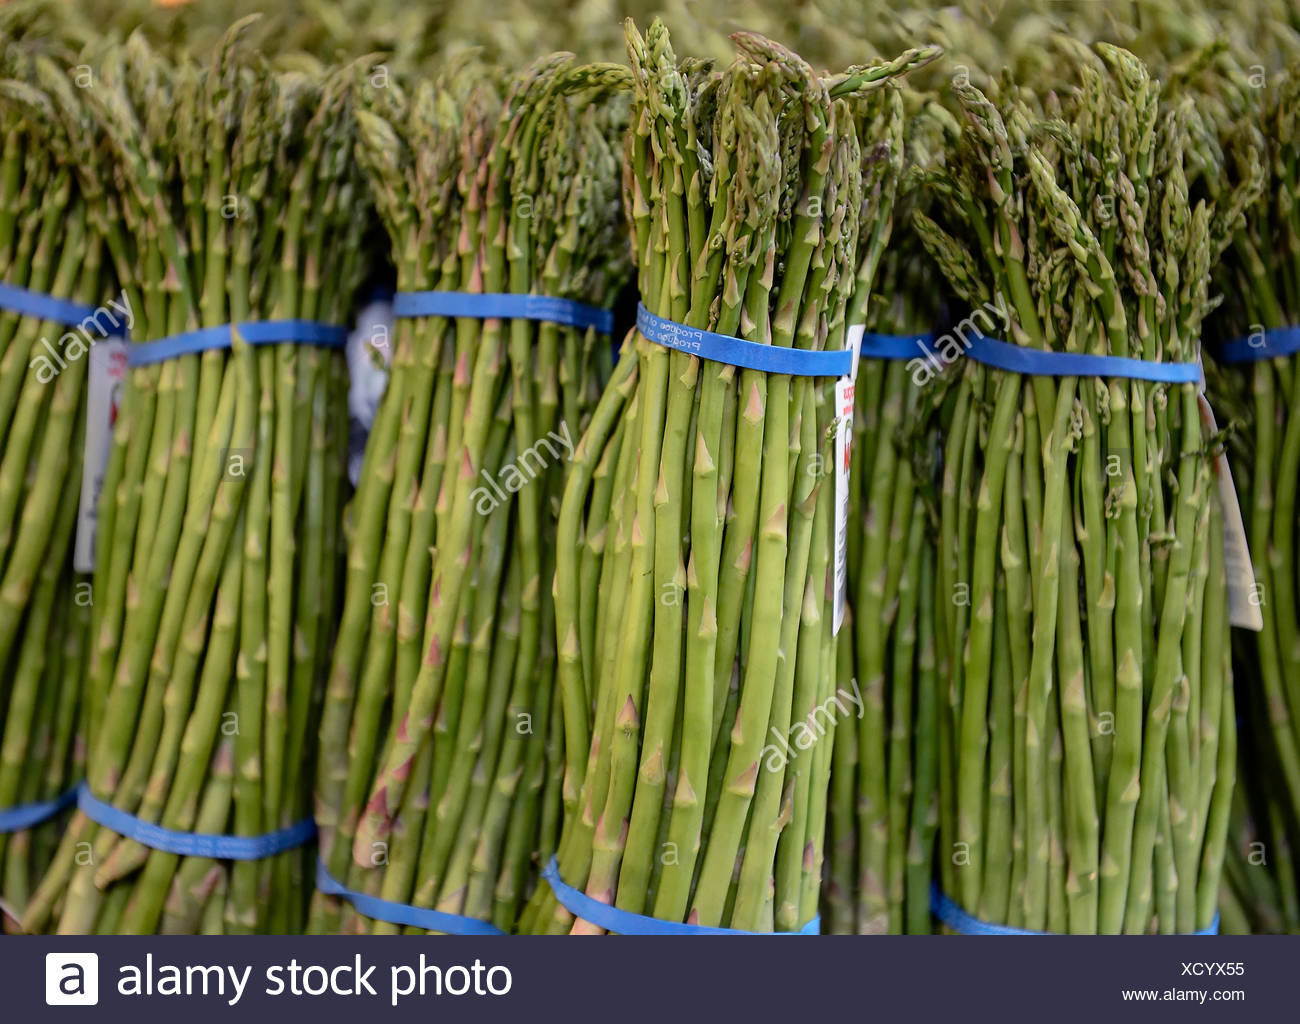 Bundles of organic asparagus in a farmers market. - Stock Image